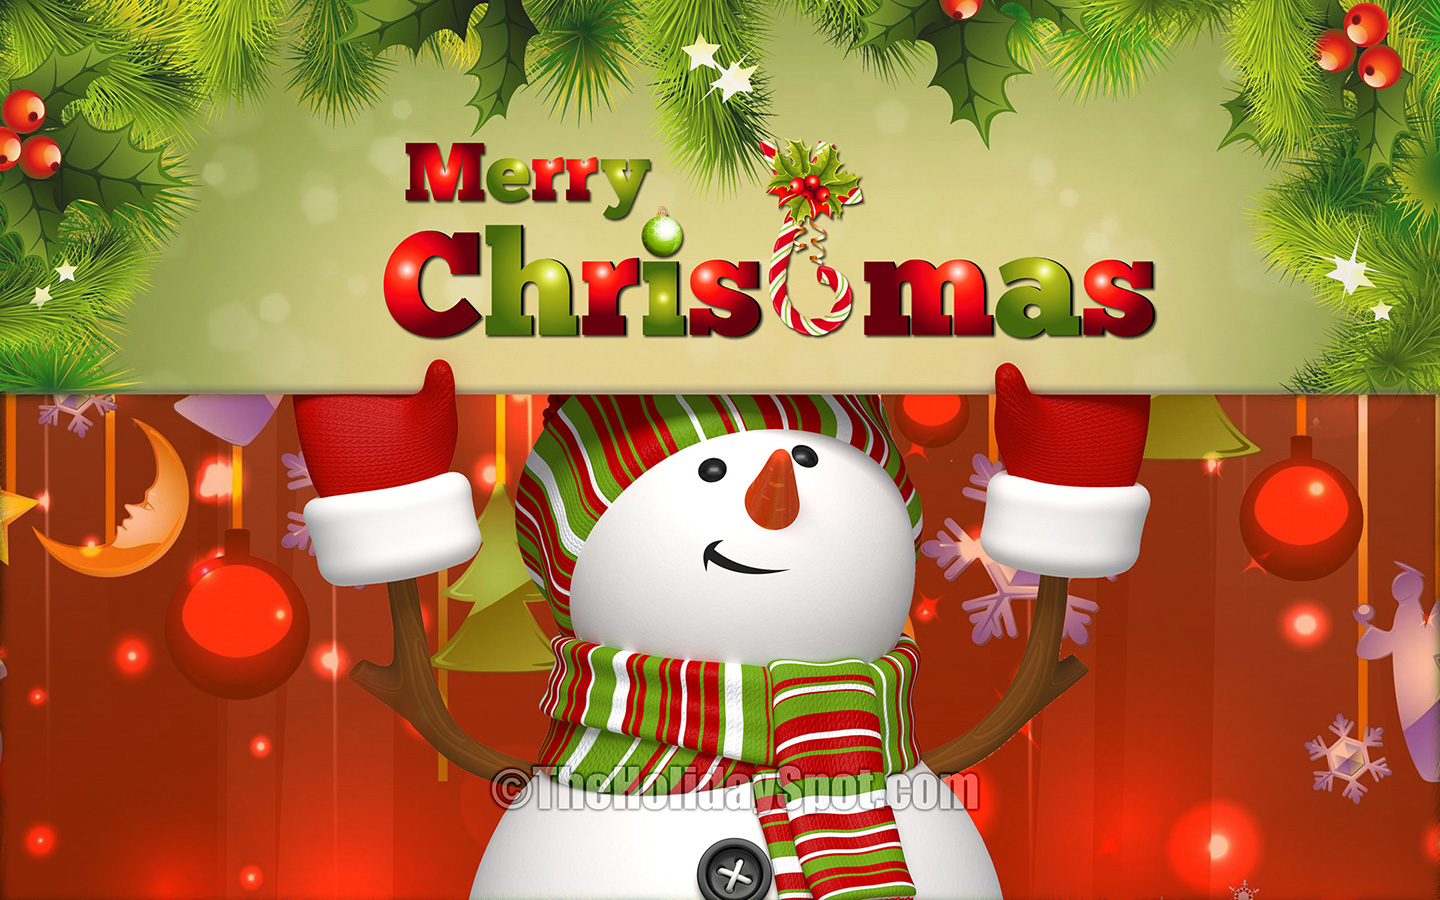 Free Download Christmas Wallpaper For Mobile